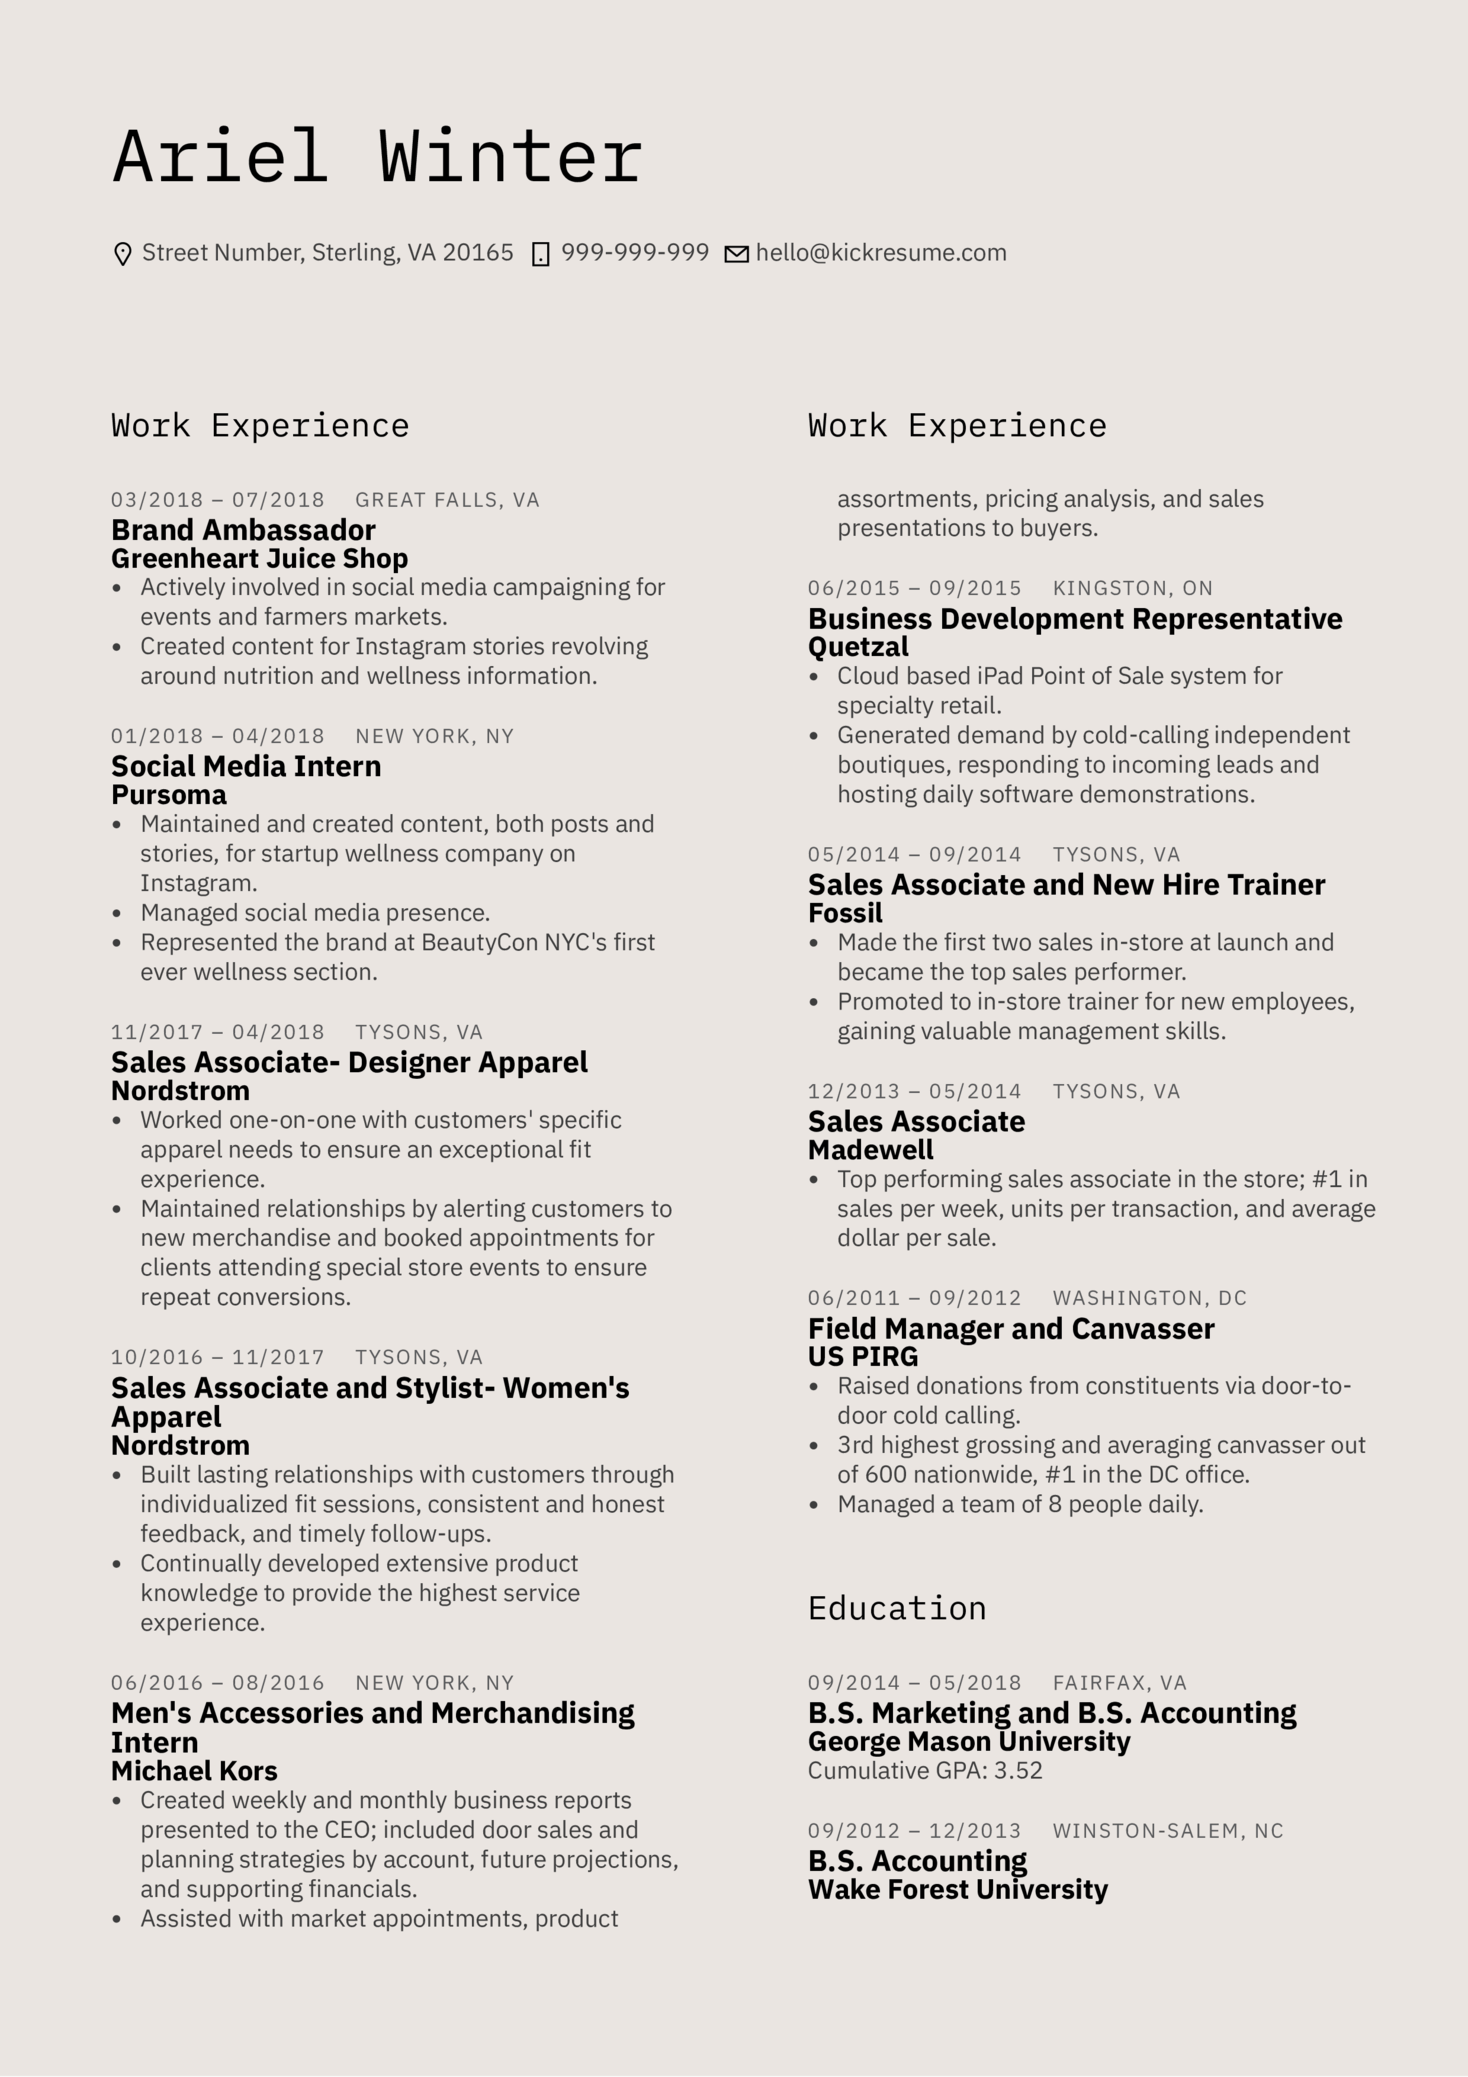 YELP Account Executive Resume Sample (Part 1)